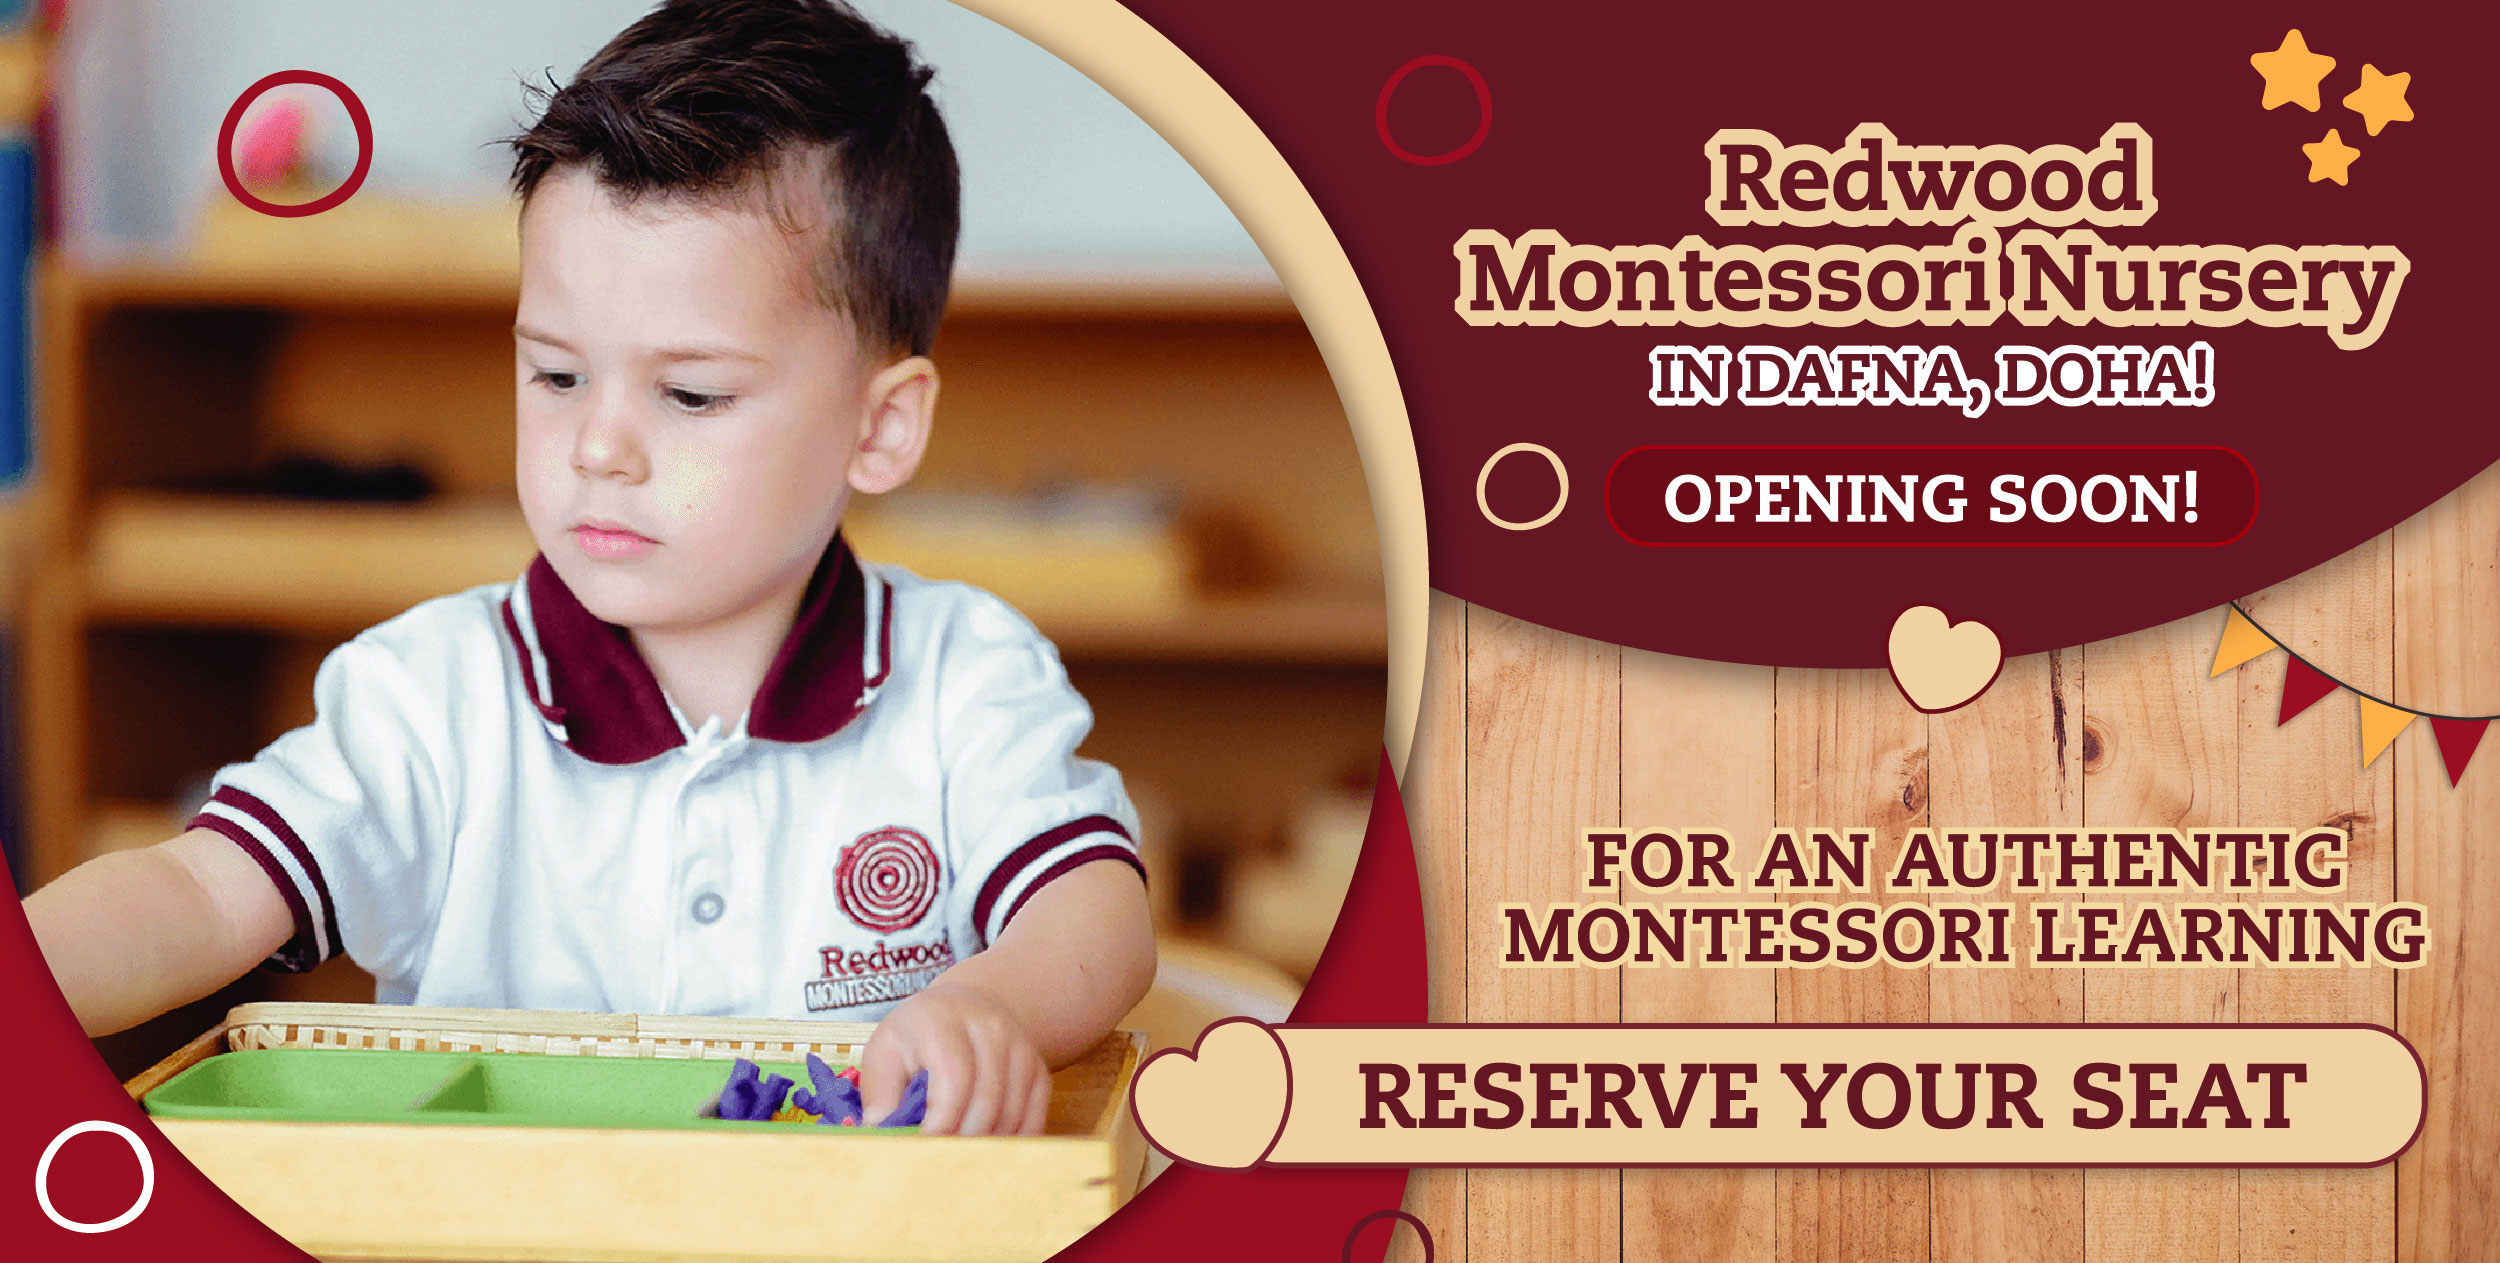 Redwood Montessori Nursery Dafna Doha